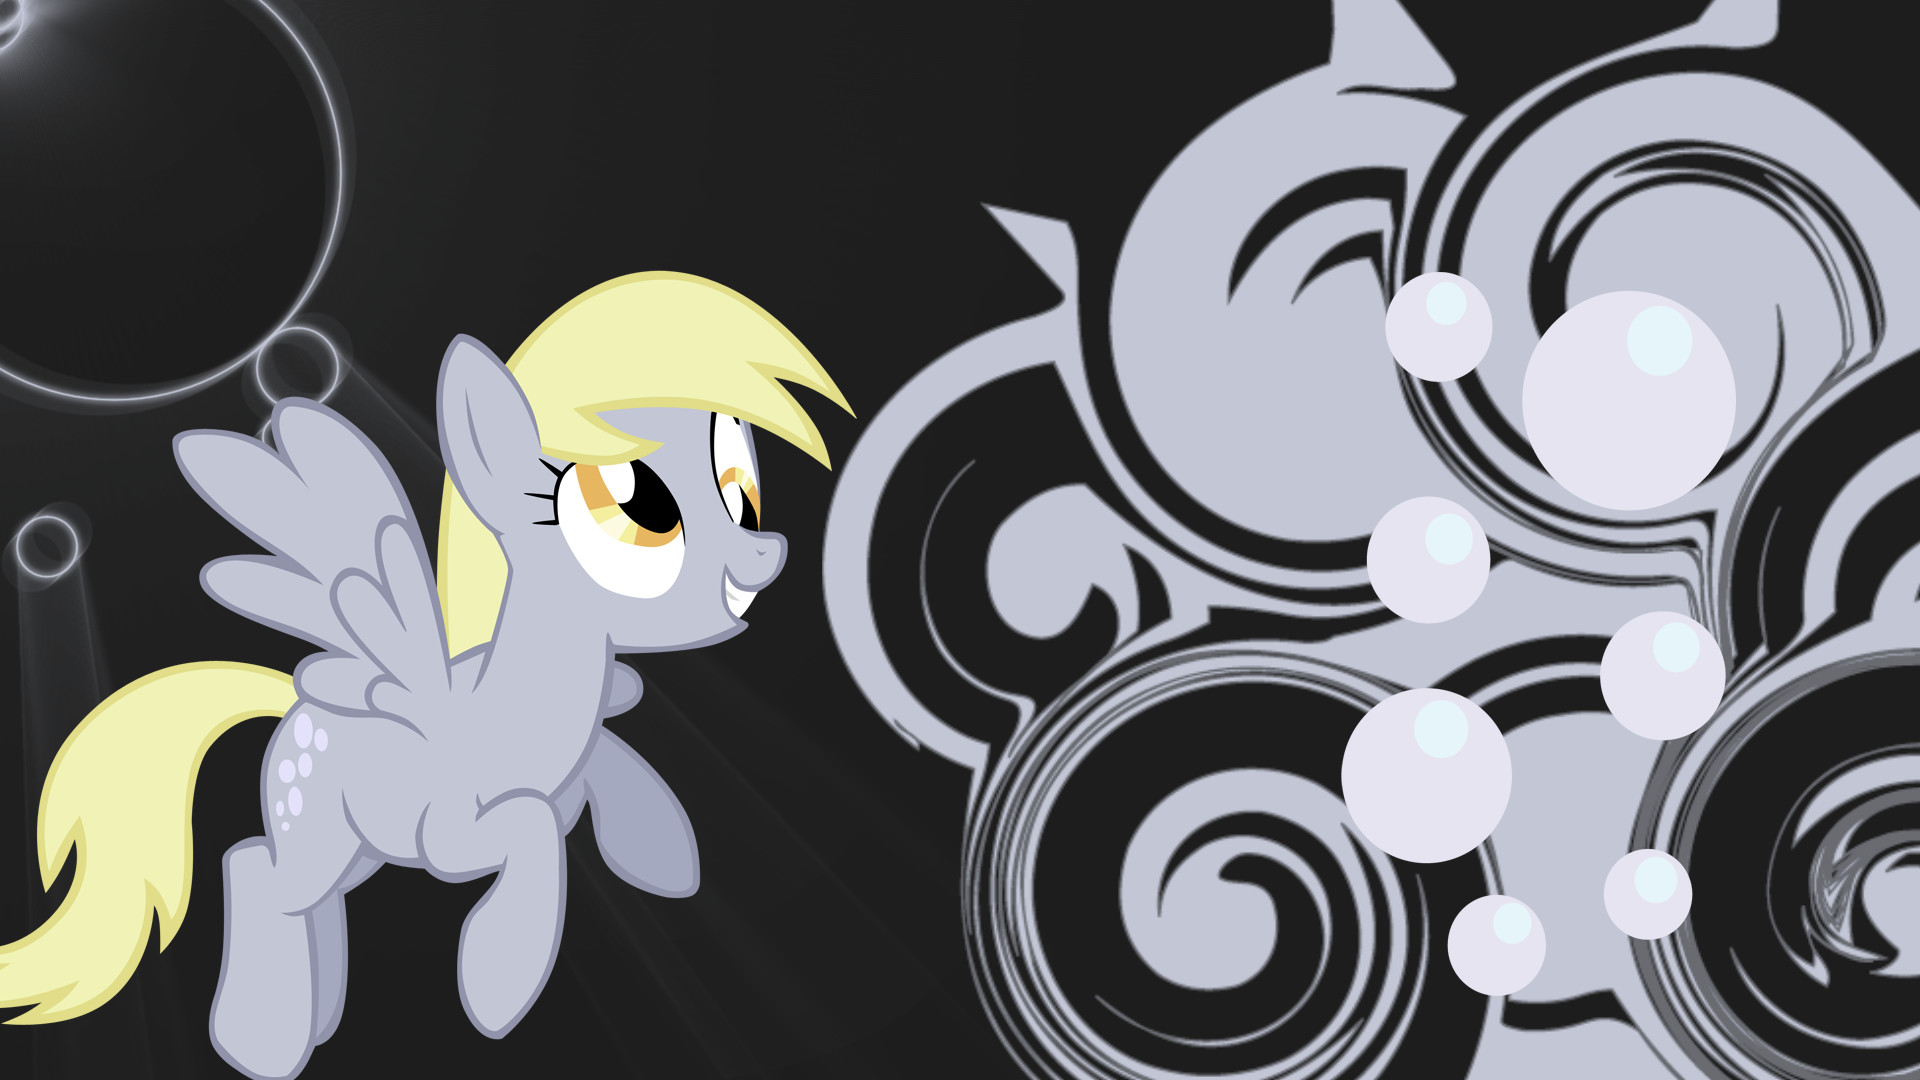 derpy hooves swirl and shine wallpaper by sk8pants d4lzxxd